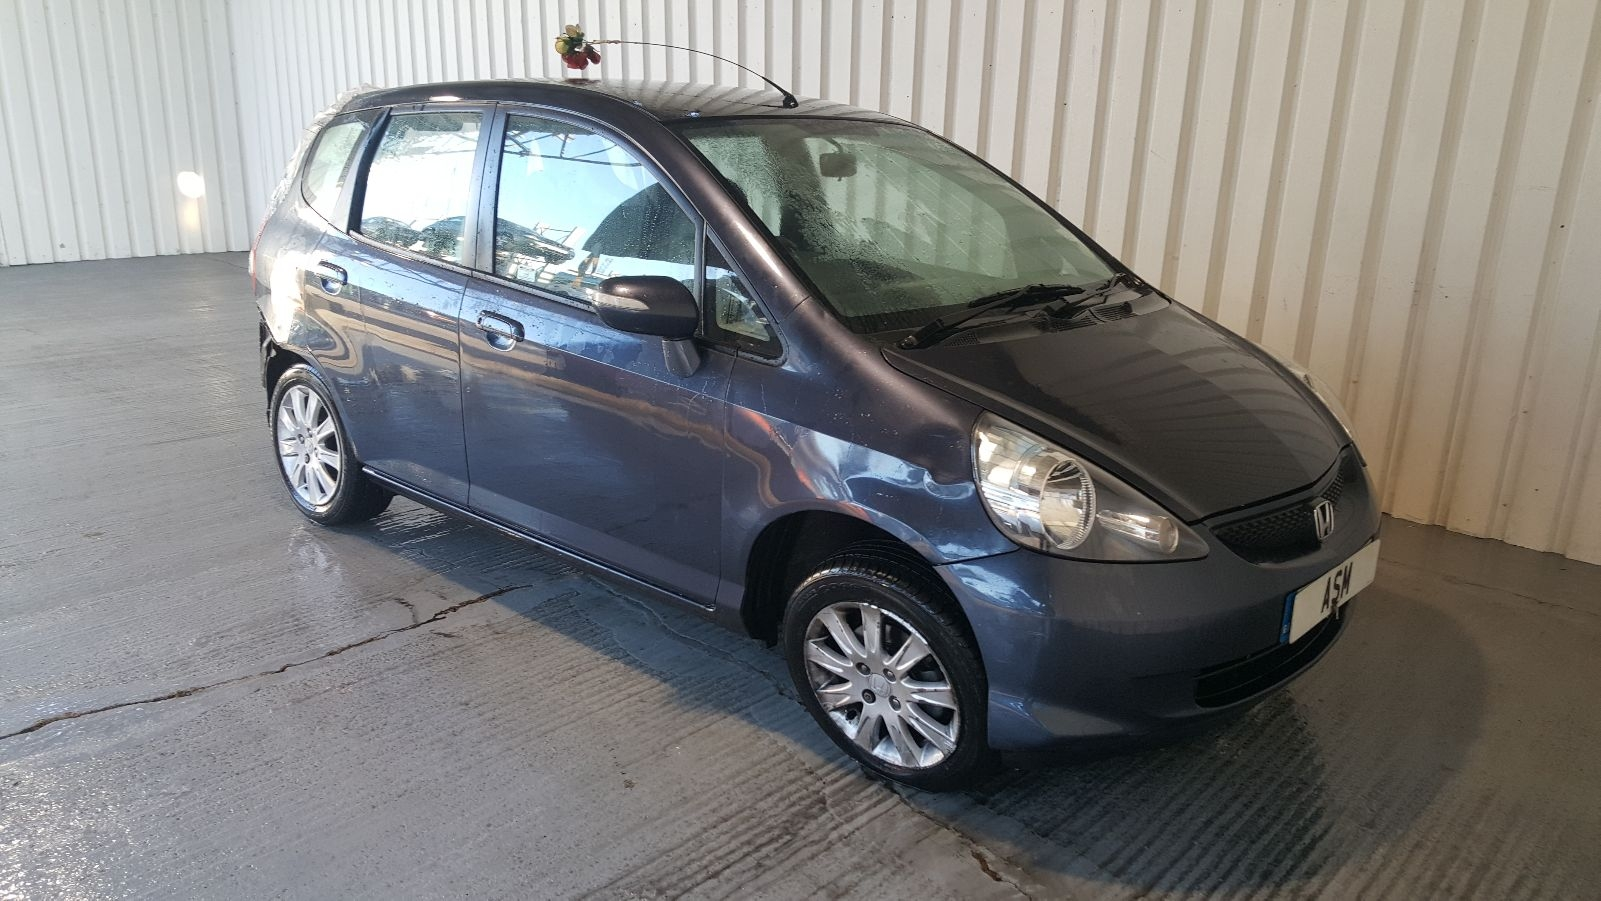 Image for a 2008 Honda Jazz 1.3 Petrol L13A1 Engine